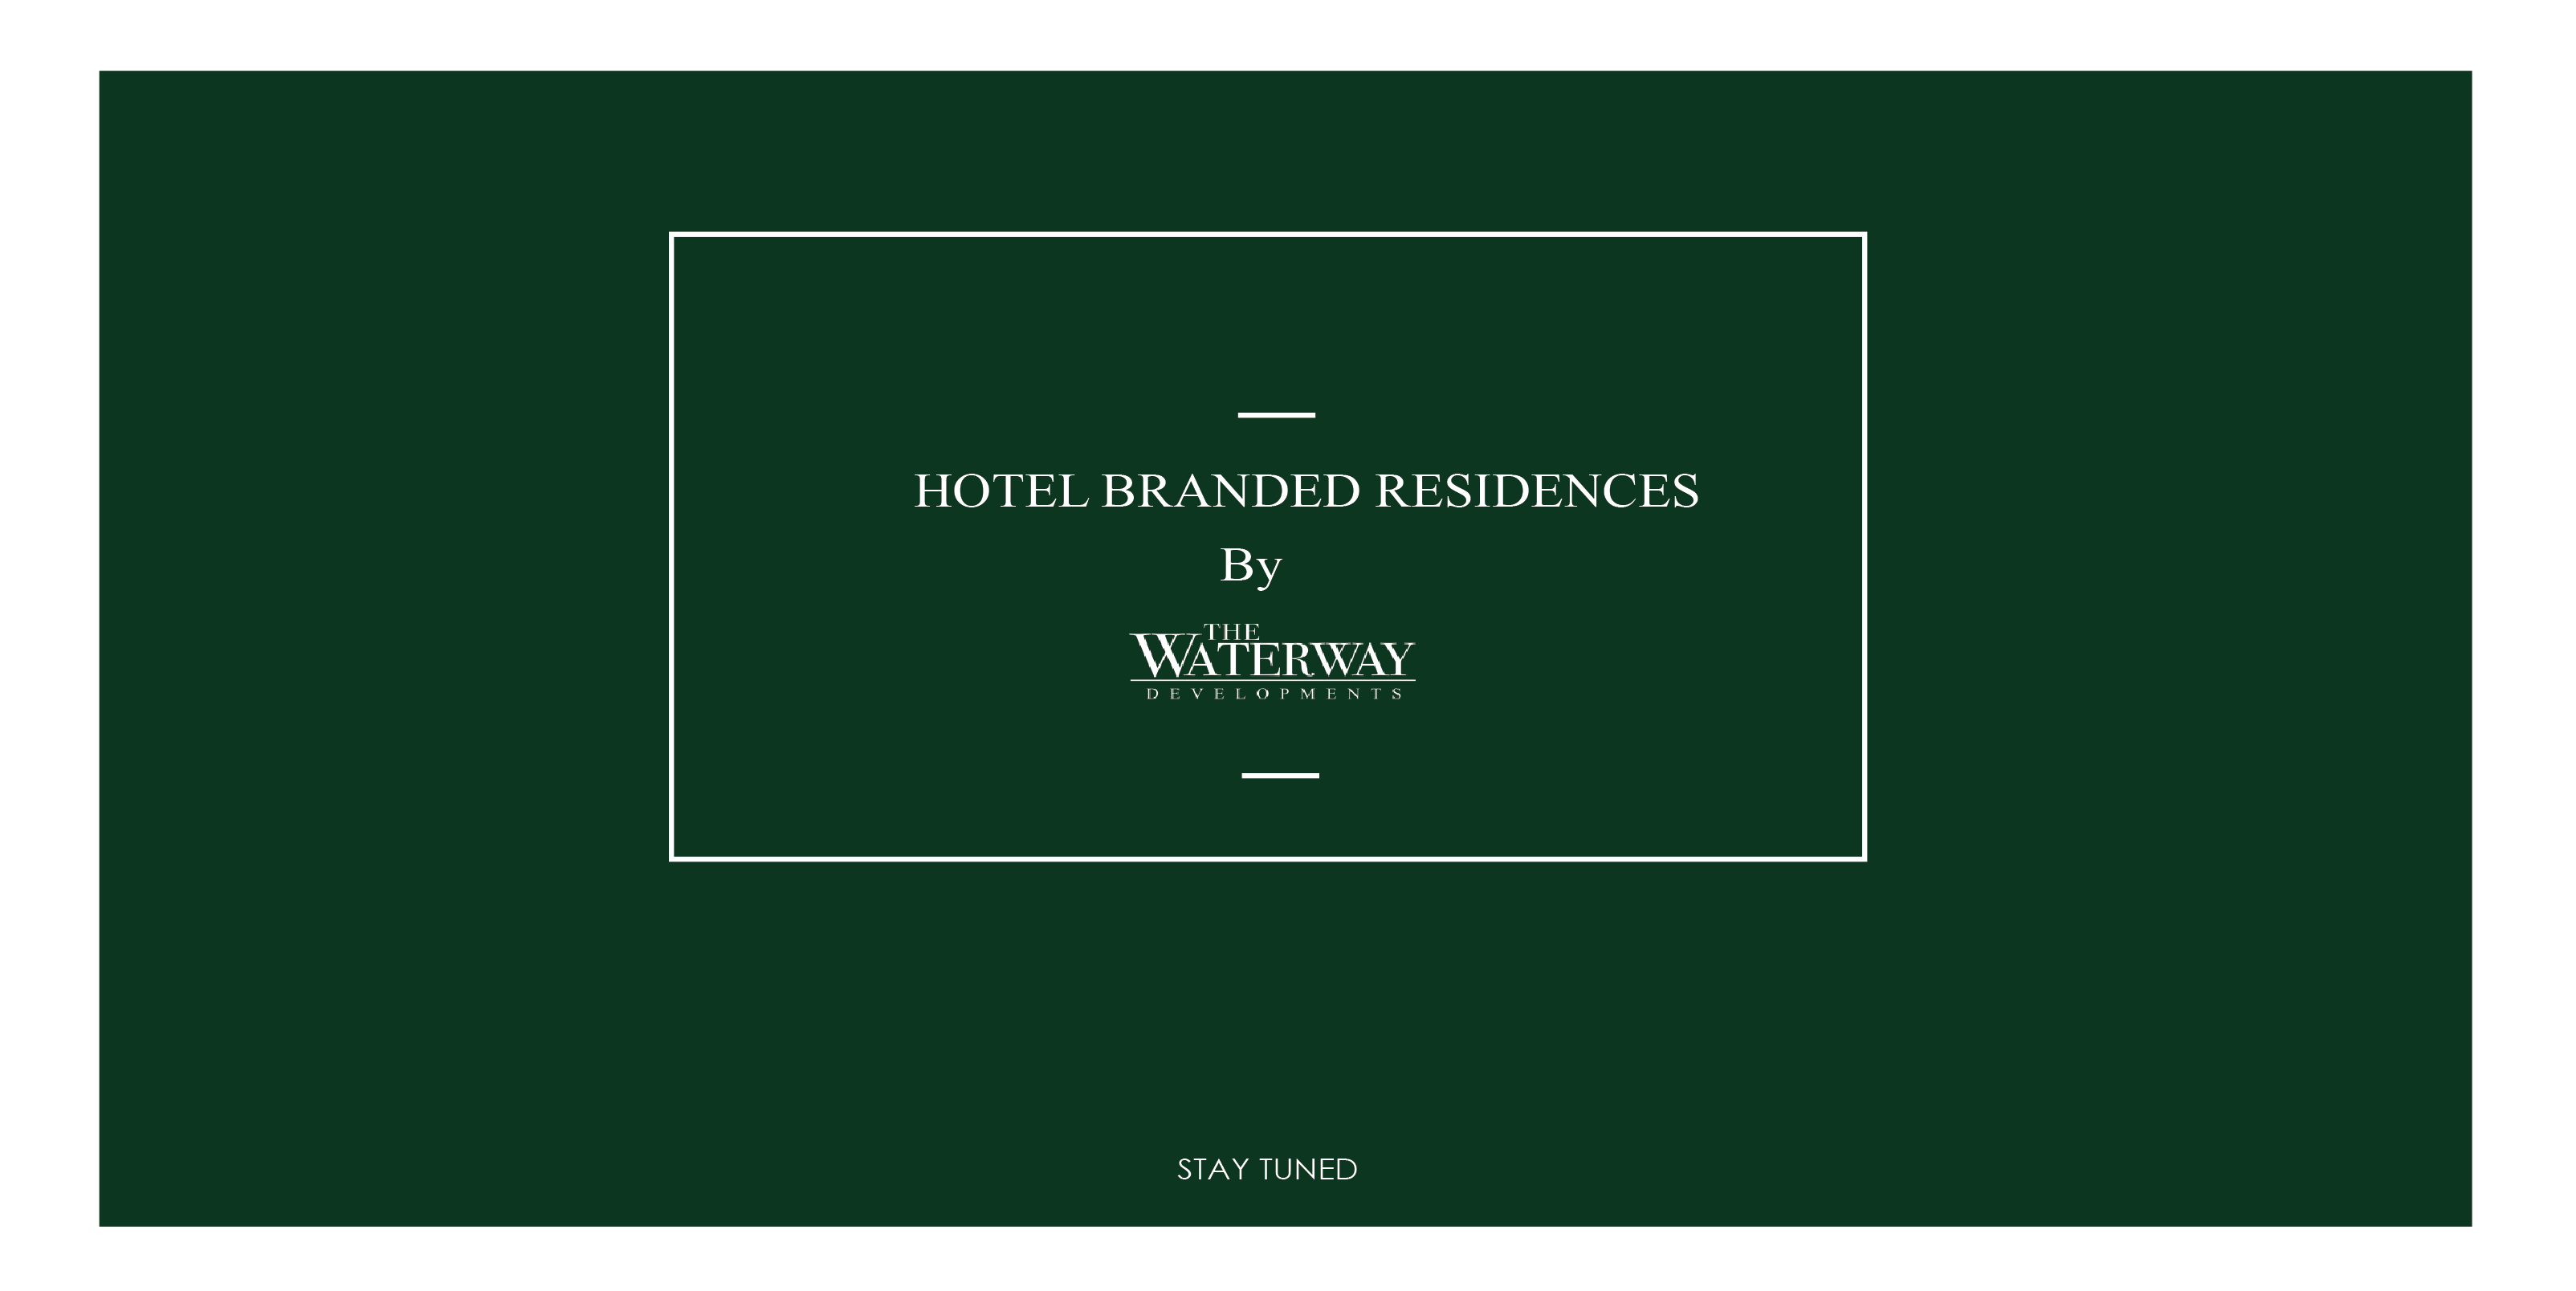 Waterway Serviced Apartments in New Cairo by Equity Real Estate Developments Launching Soon - Behind 5A Waterway - 8 Gates Real Estate Egypt (1)